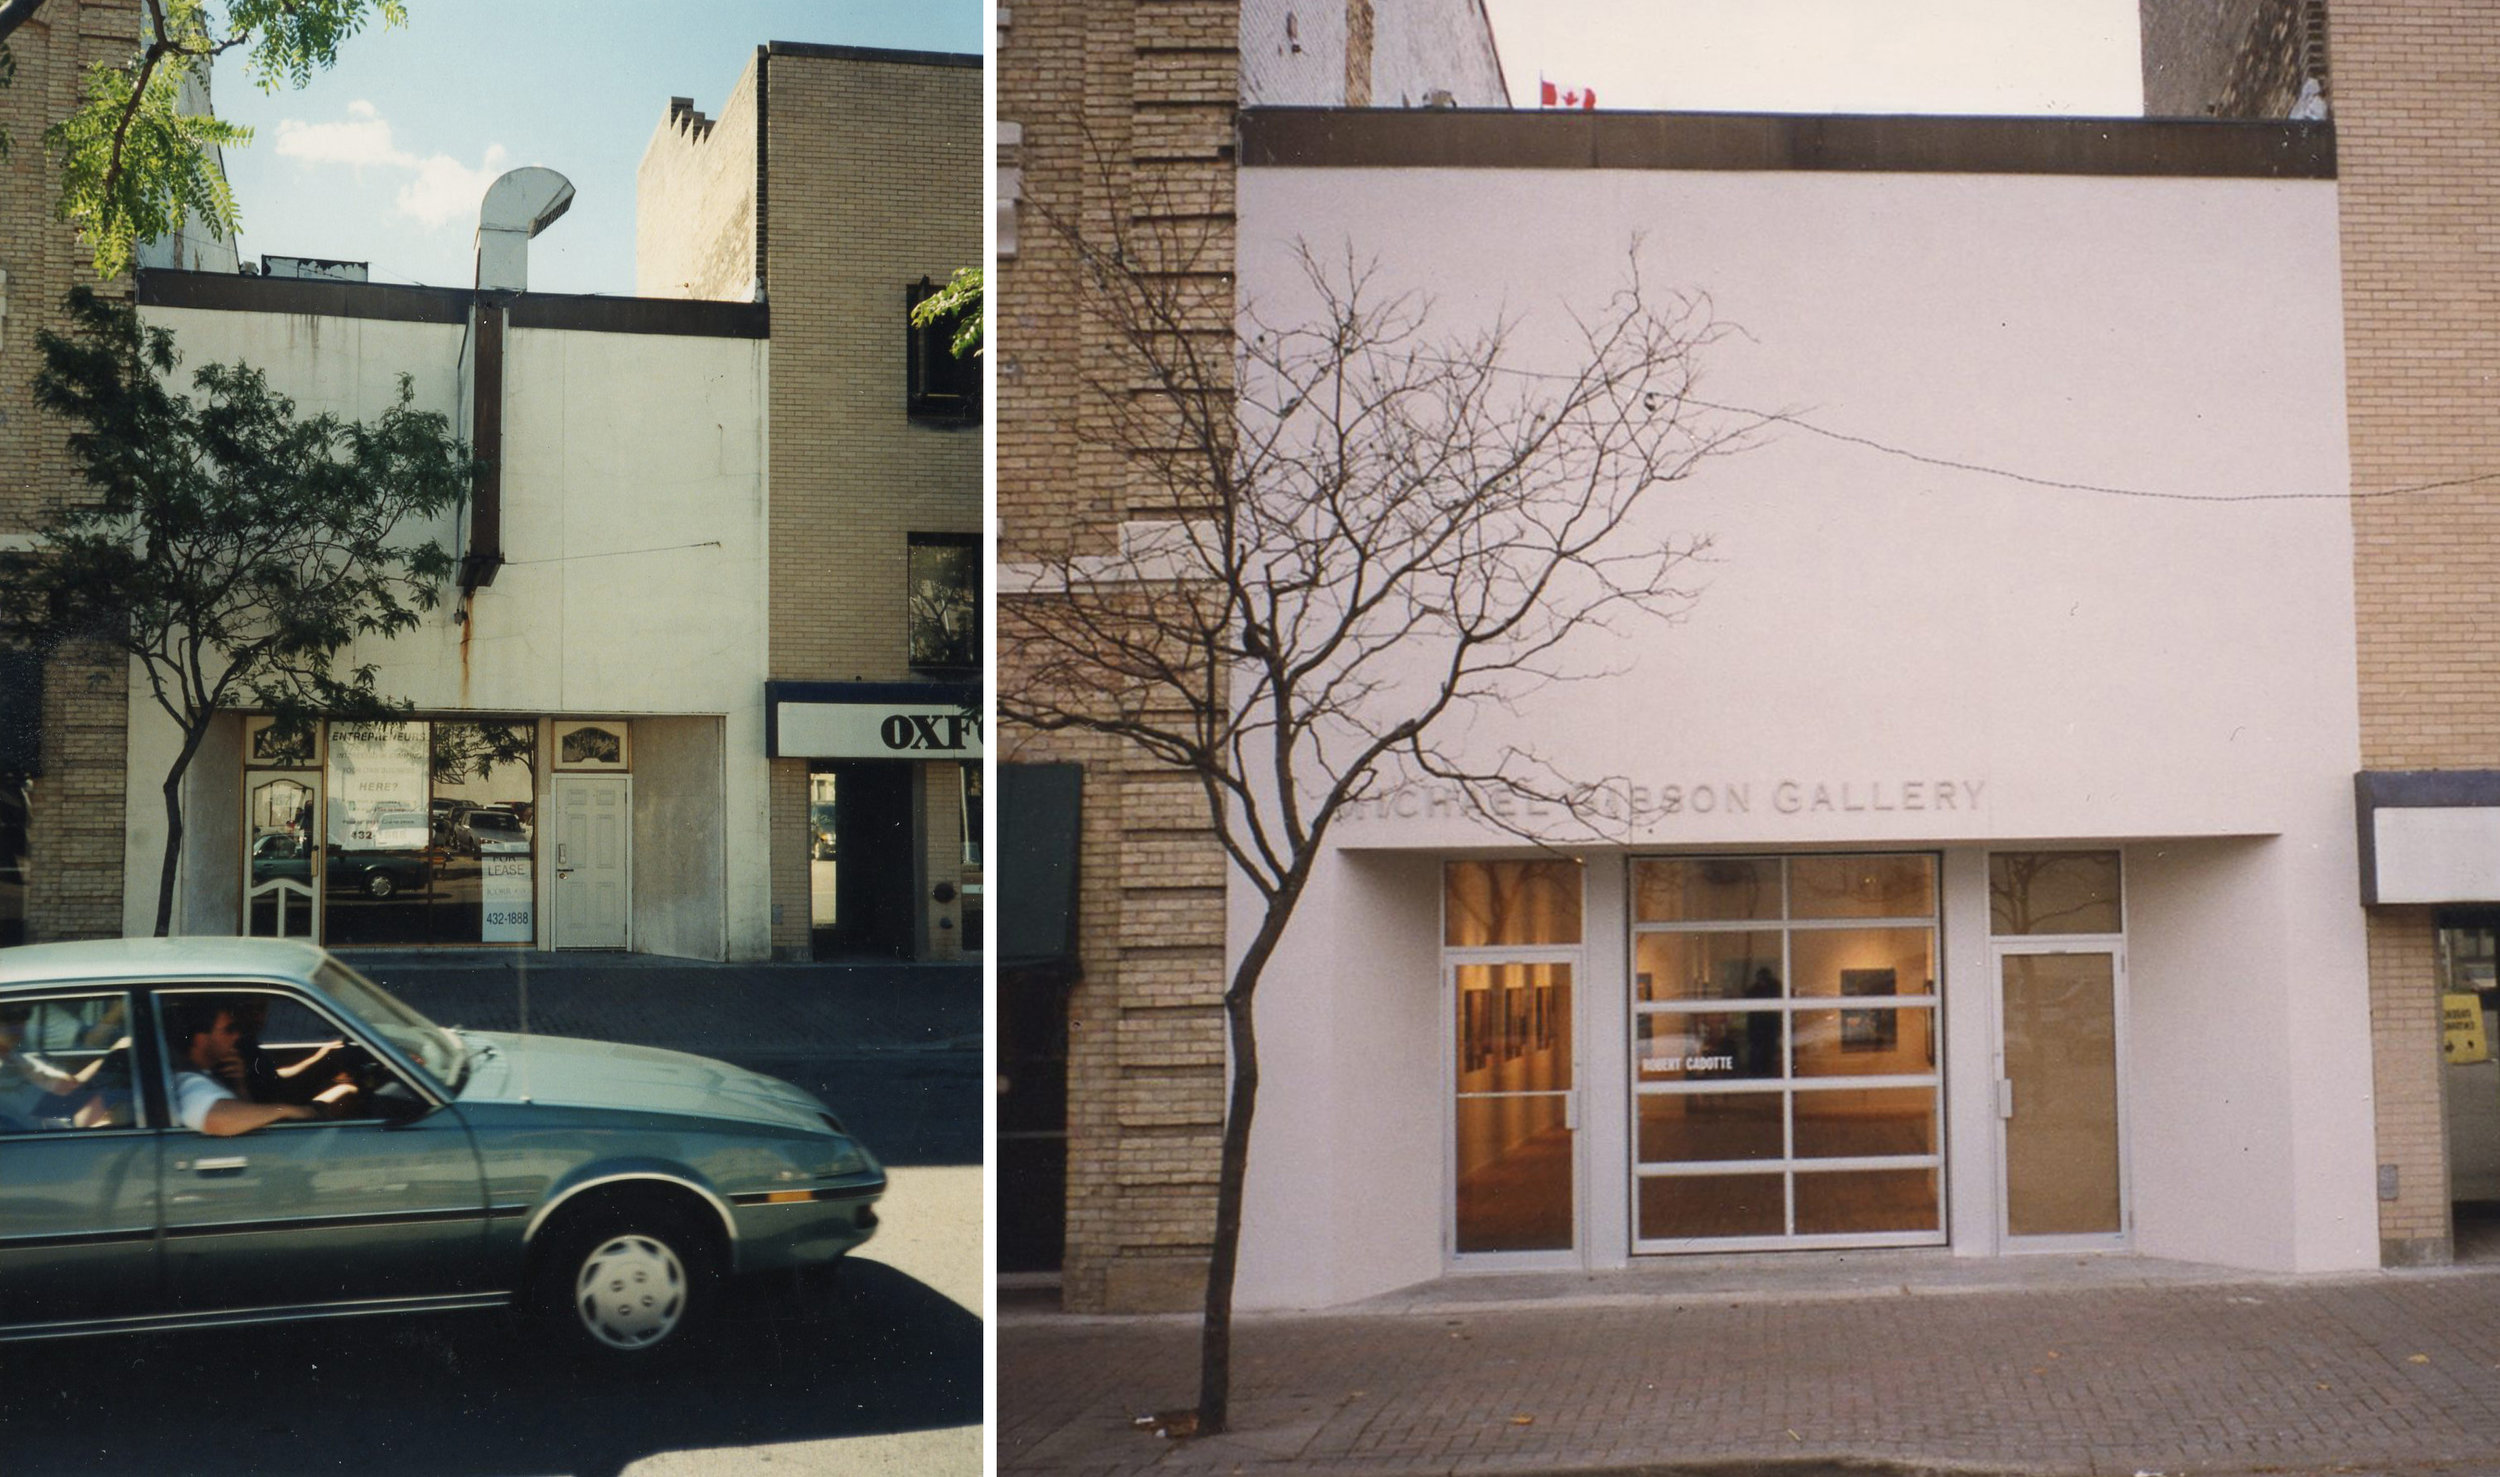 Before and after construction of Michael Gibson Gallery on Carling St. (Images provided By Michael Gibson)